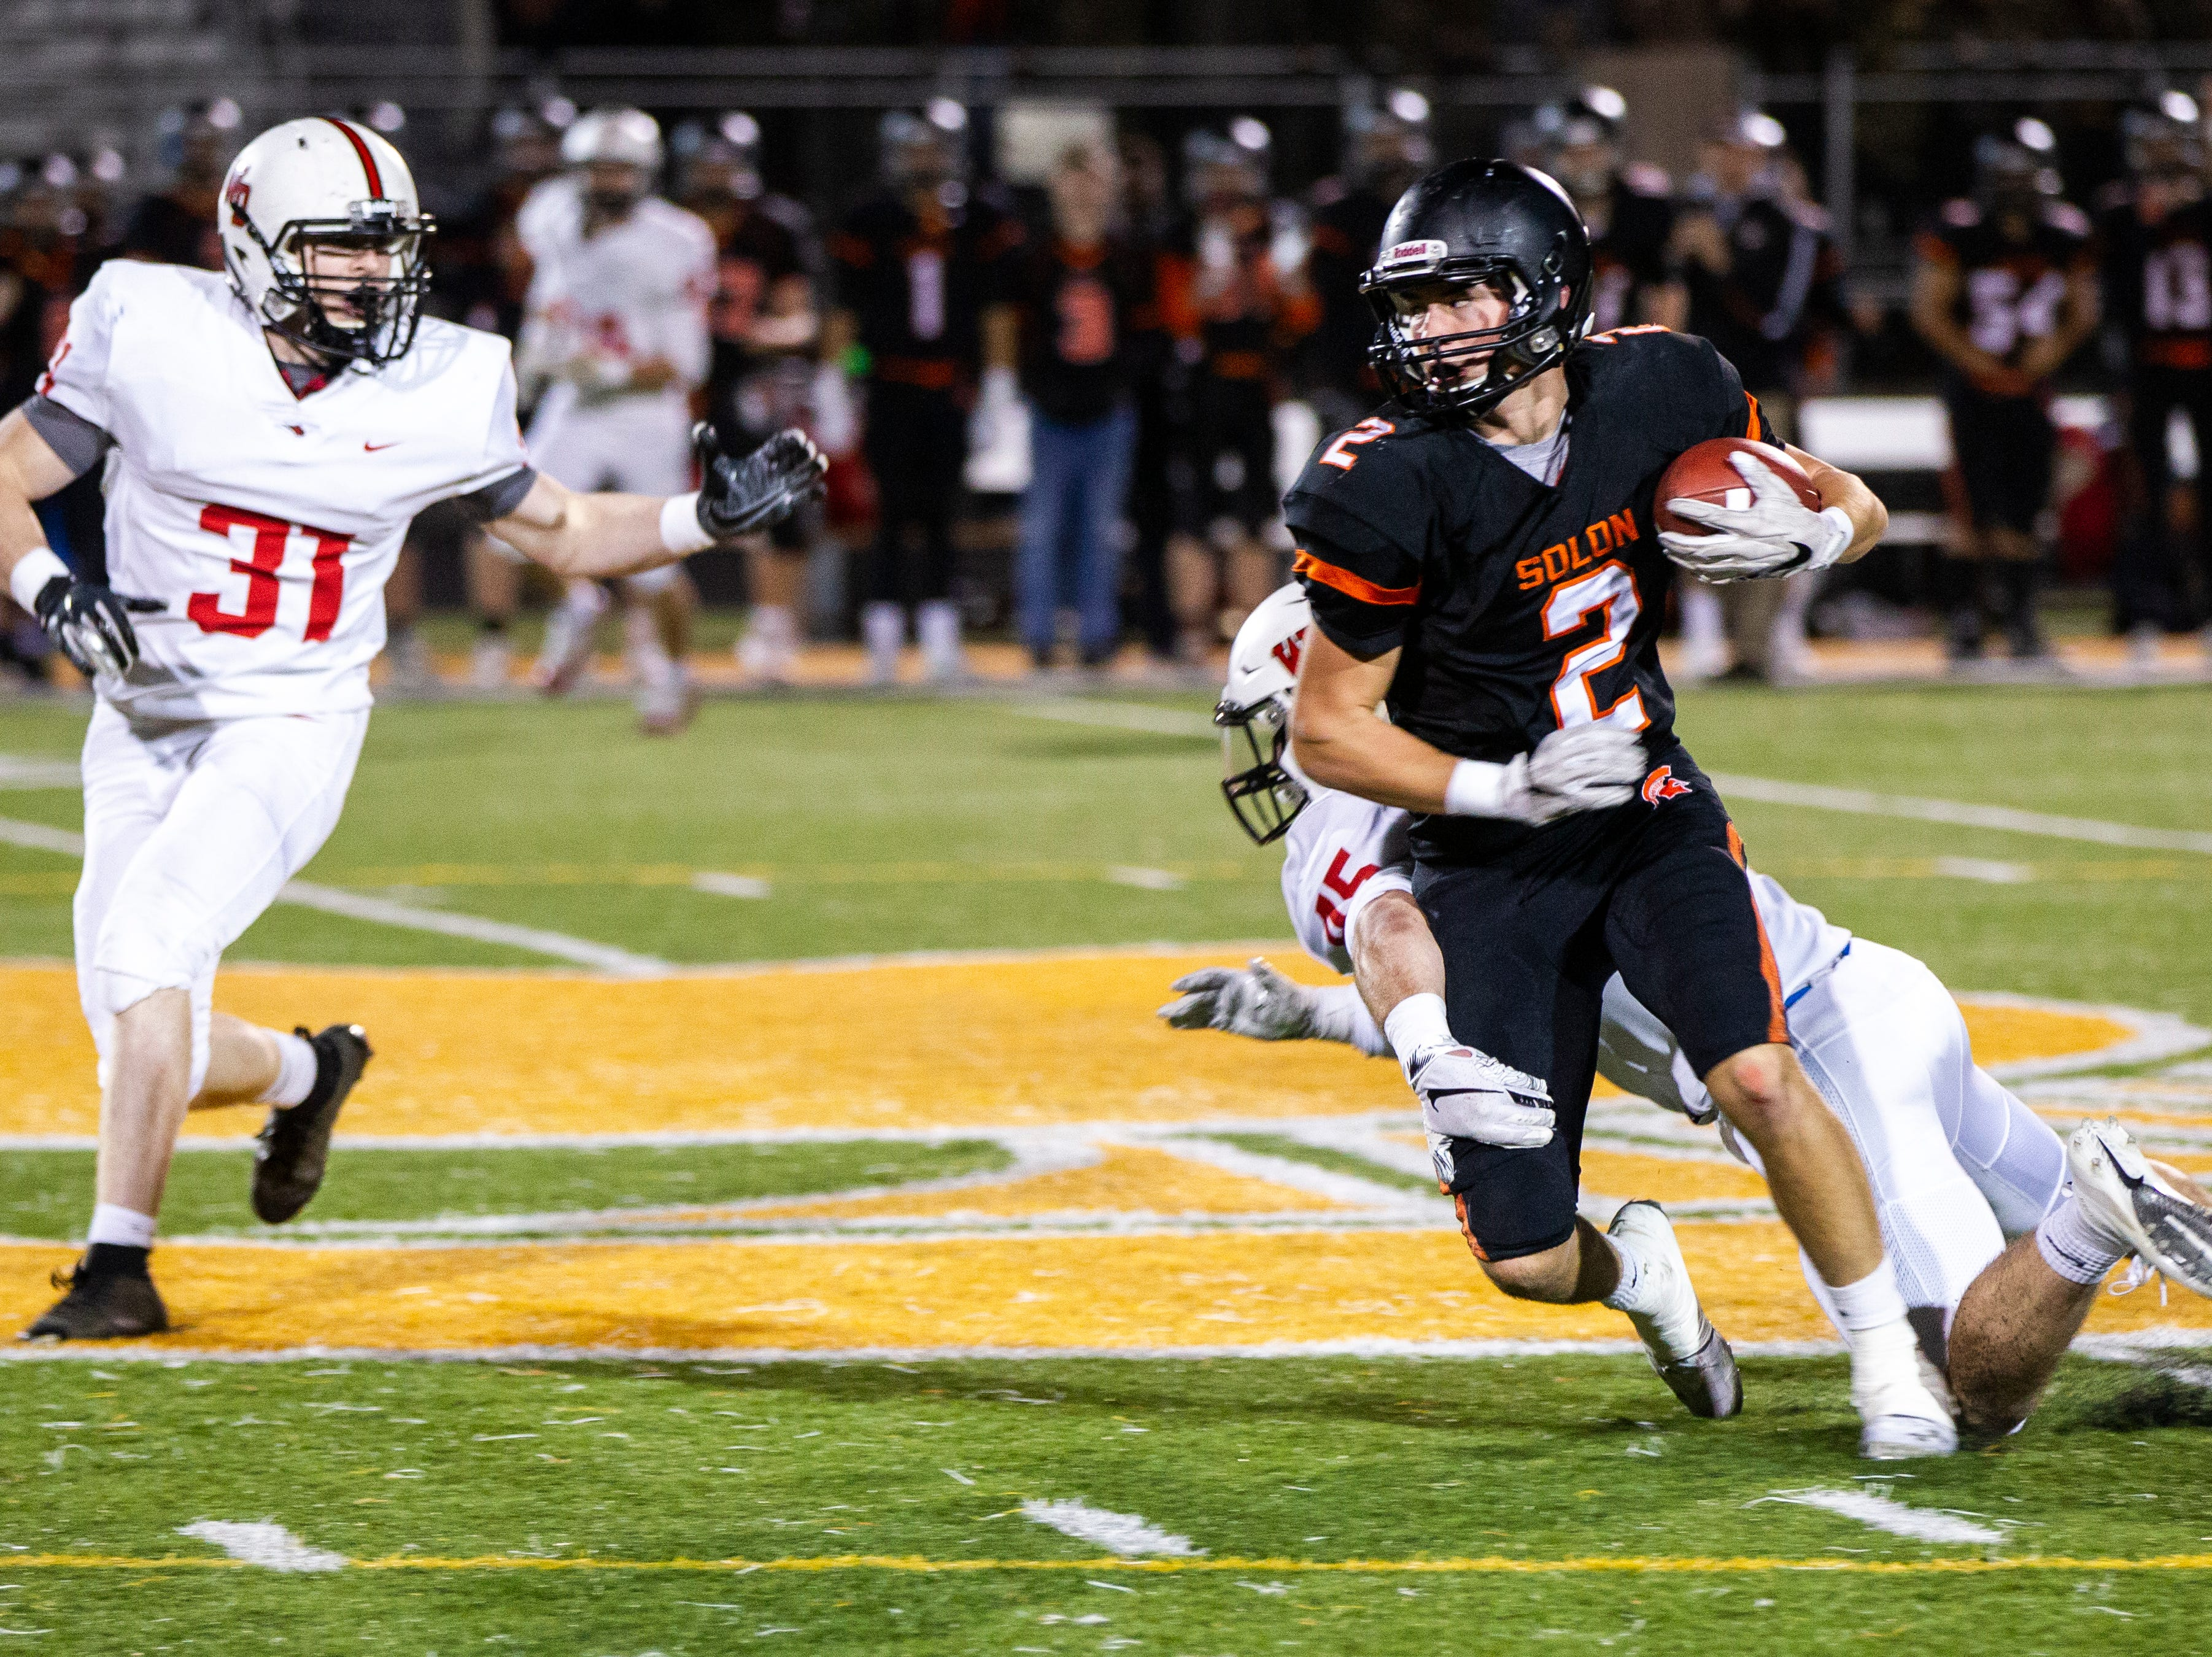 Solon's Seamus Poynton (2) pulls in a pass while crossing midfield during a Class 3A varsity first round playoff football game on Friday, Oct. 26, 2018, at Spartan Stadium in Solon, Iowa.